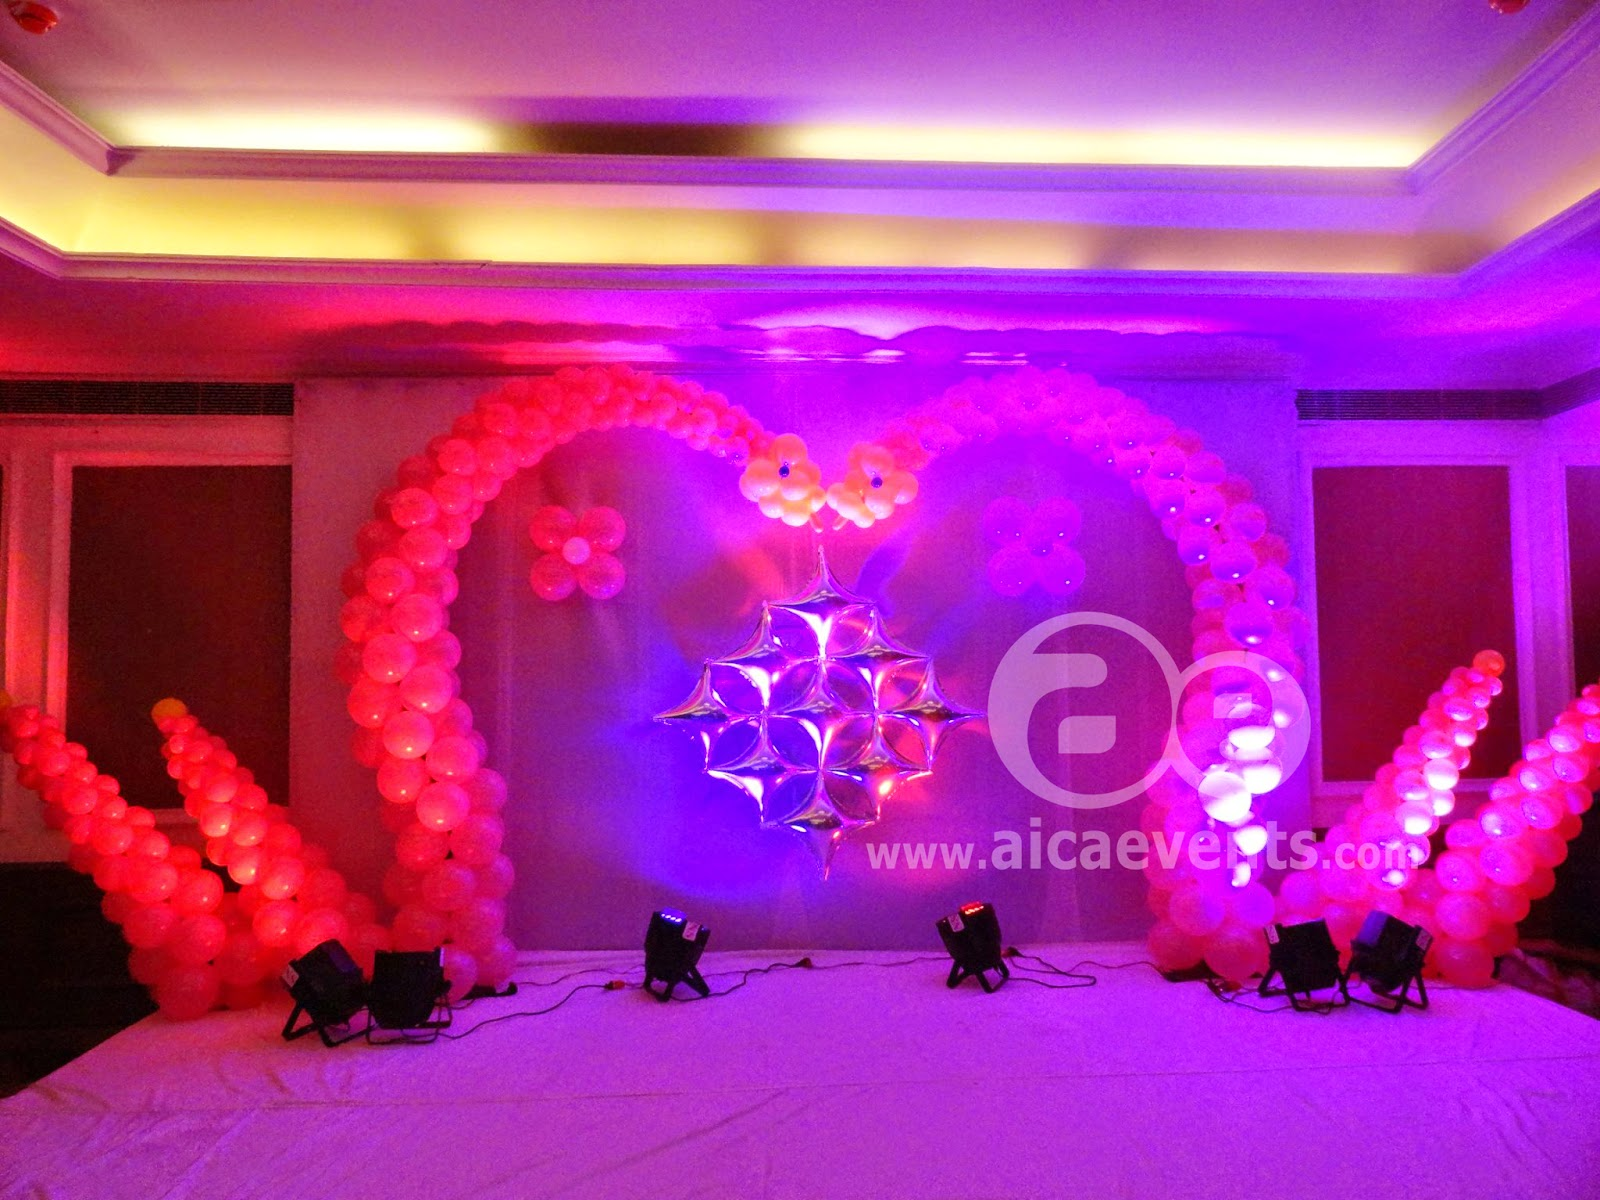 Aicaevents balloon decorations with different stage back for 1st birthday balloon decoration ideas